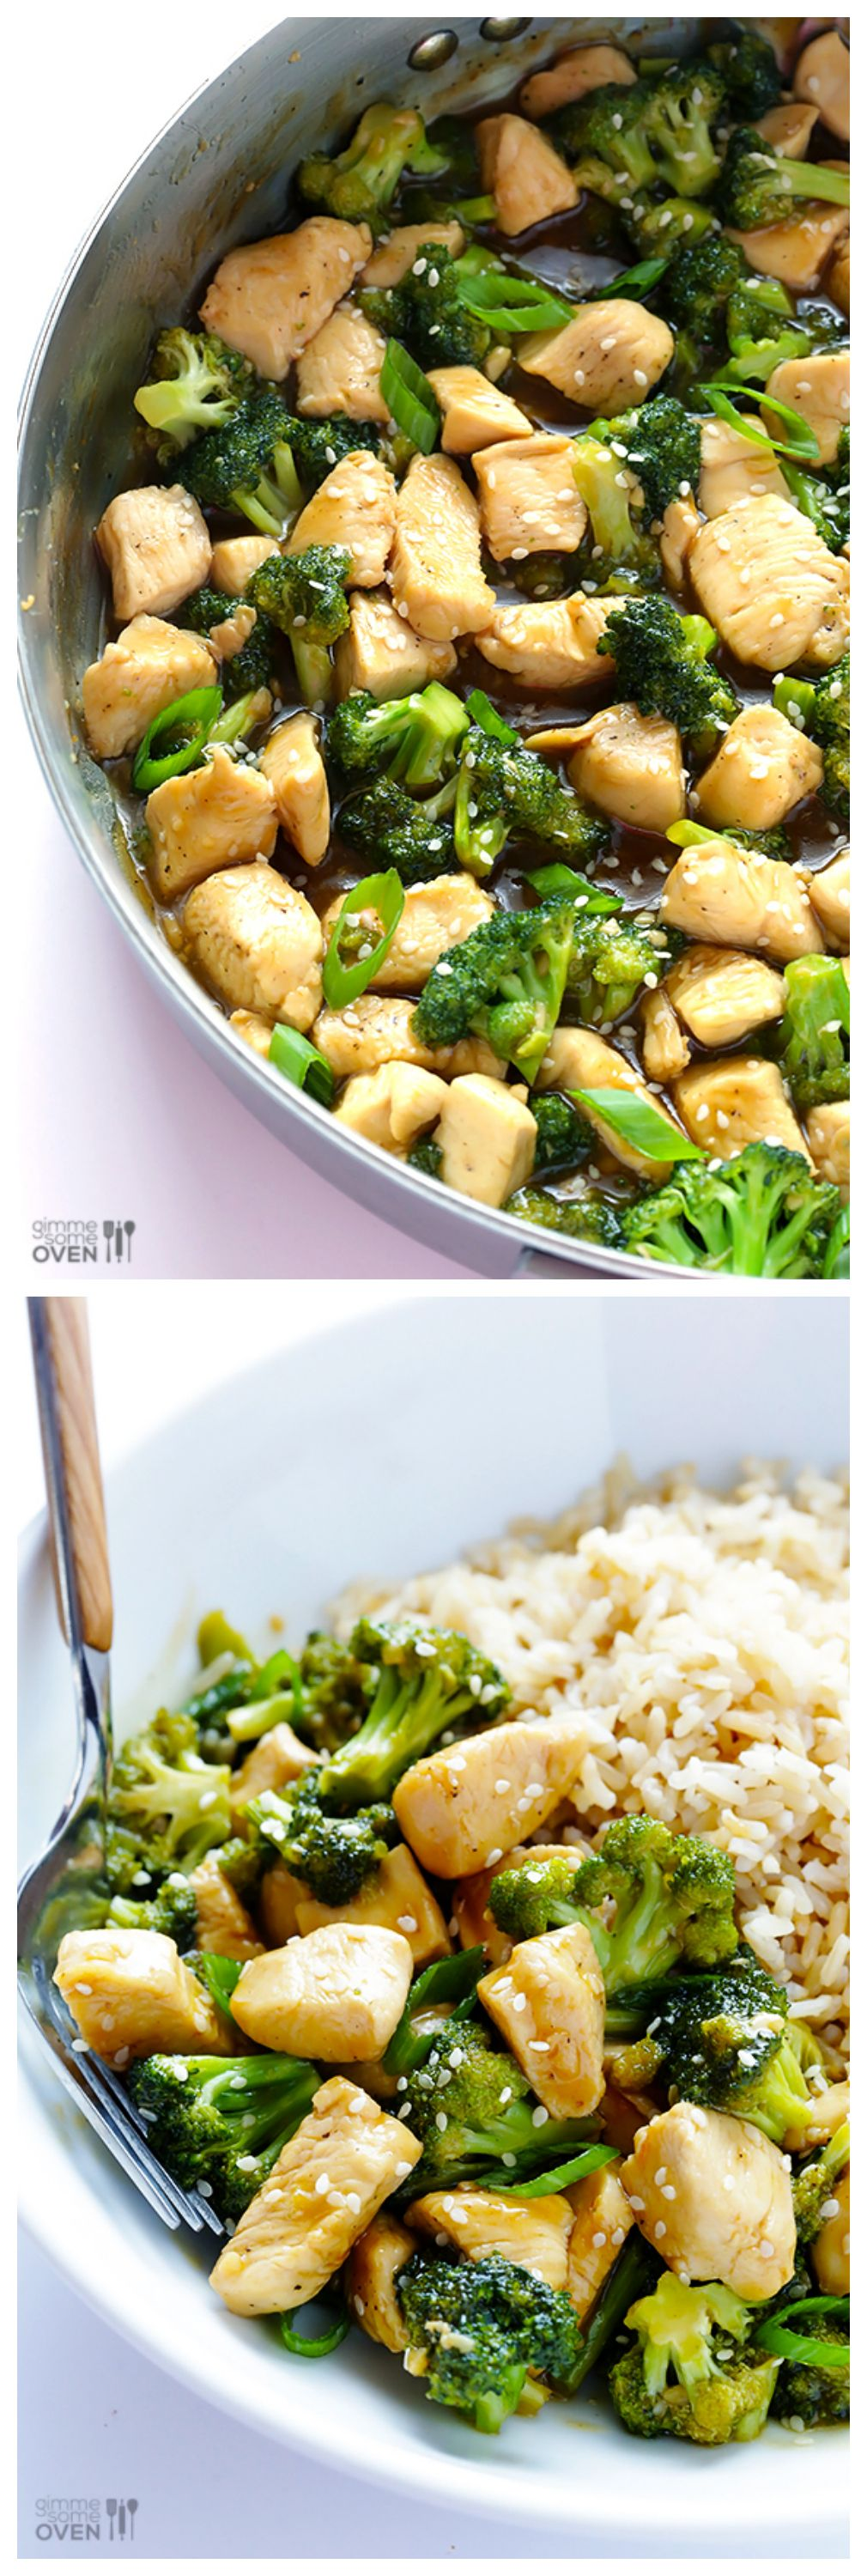 12-Minute Chicken Broccoli -- fresh, flavorful, and ready to go in just 12 minutes! http://gimmesomeoven.com #dinner #recipe #chicken